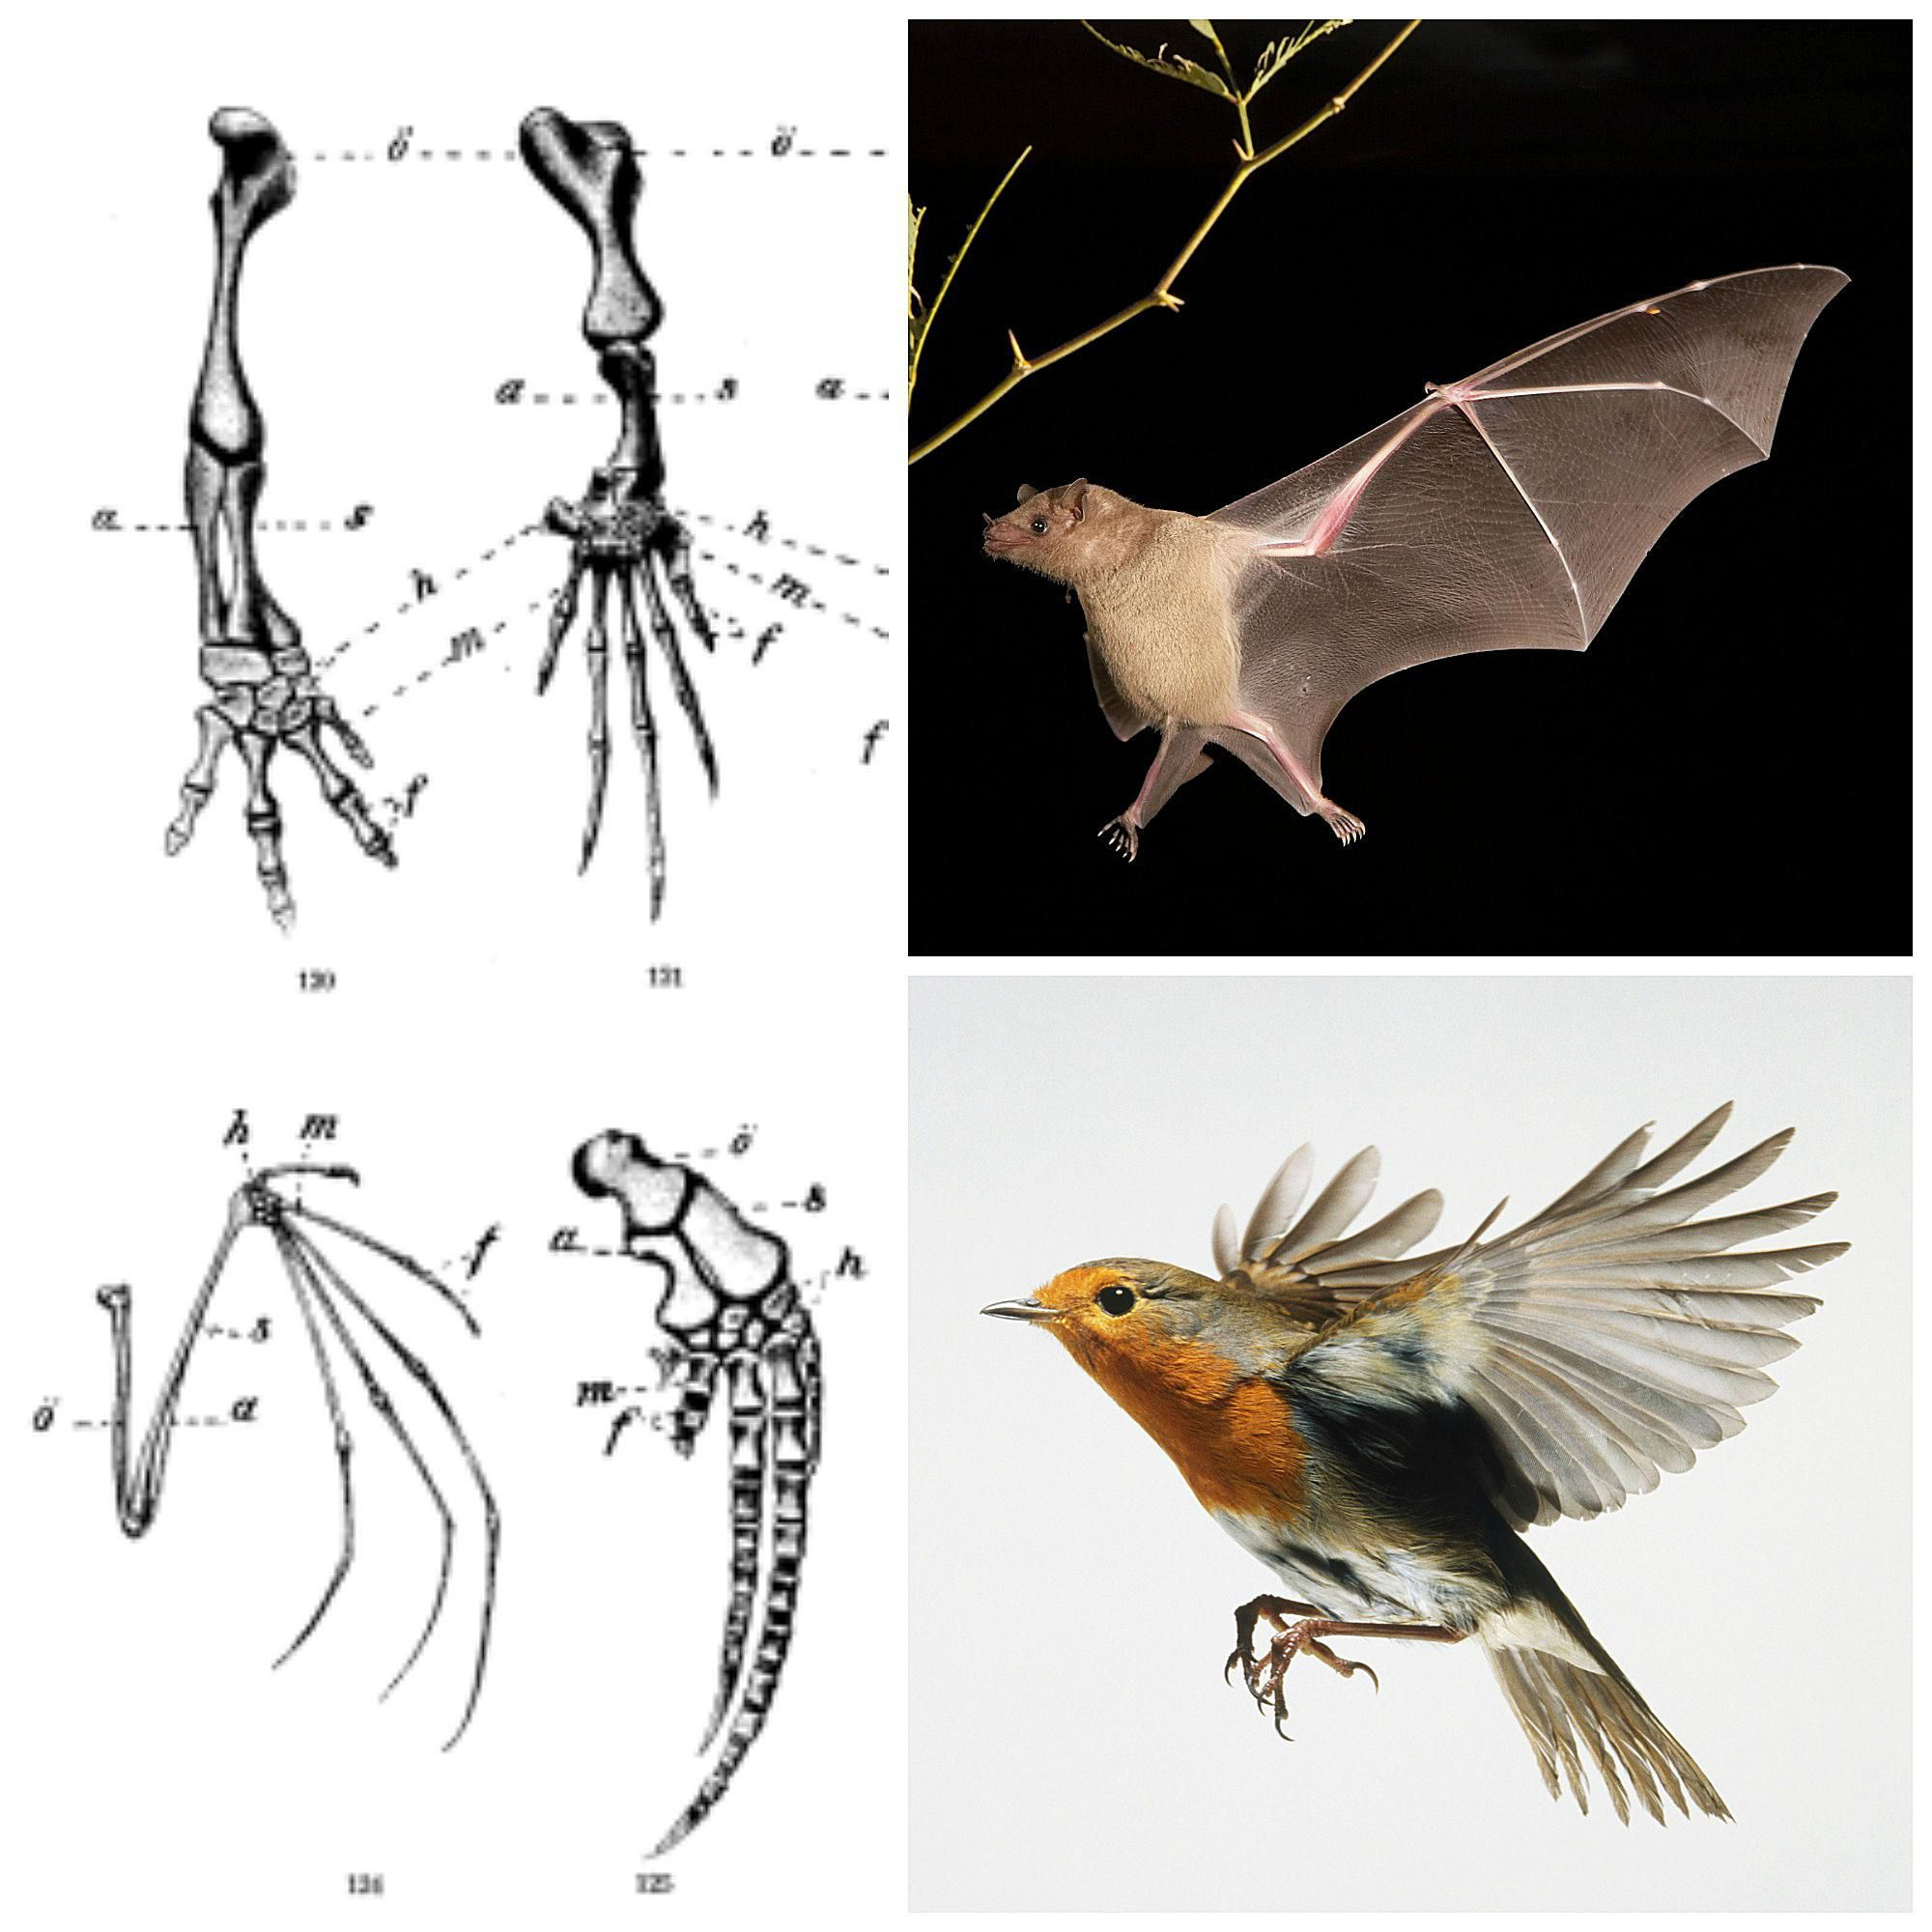 The Difference Between Homology and Homoplasy in Evolution